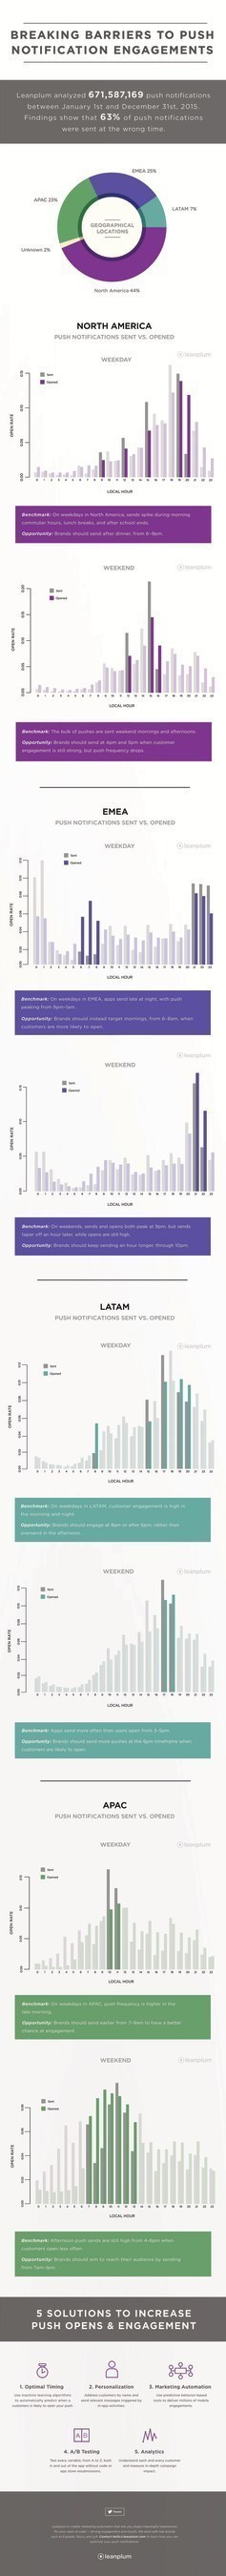 Leanplum Data Reveals Mobile Marketers Struggle With Relevancy